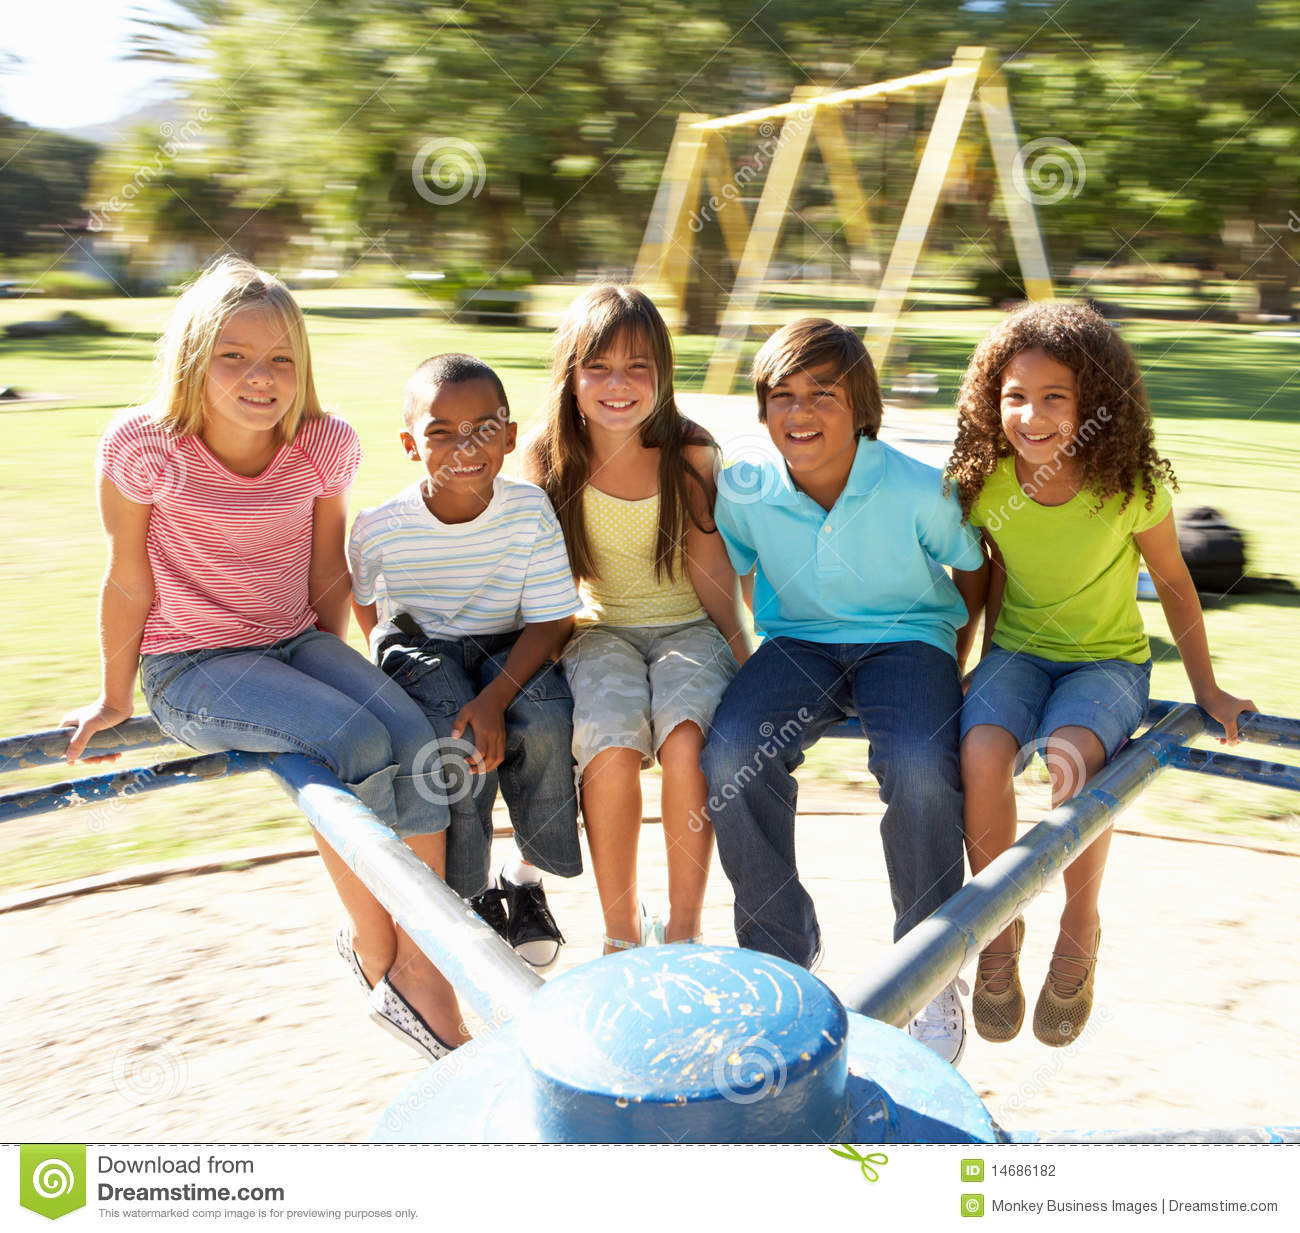 Download Children Riding On Roundabout In Playground Stock Photo - Image of outdoors, friends: 14686182